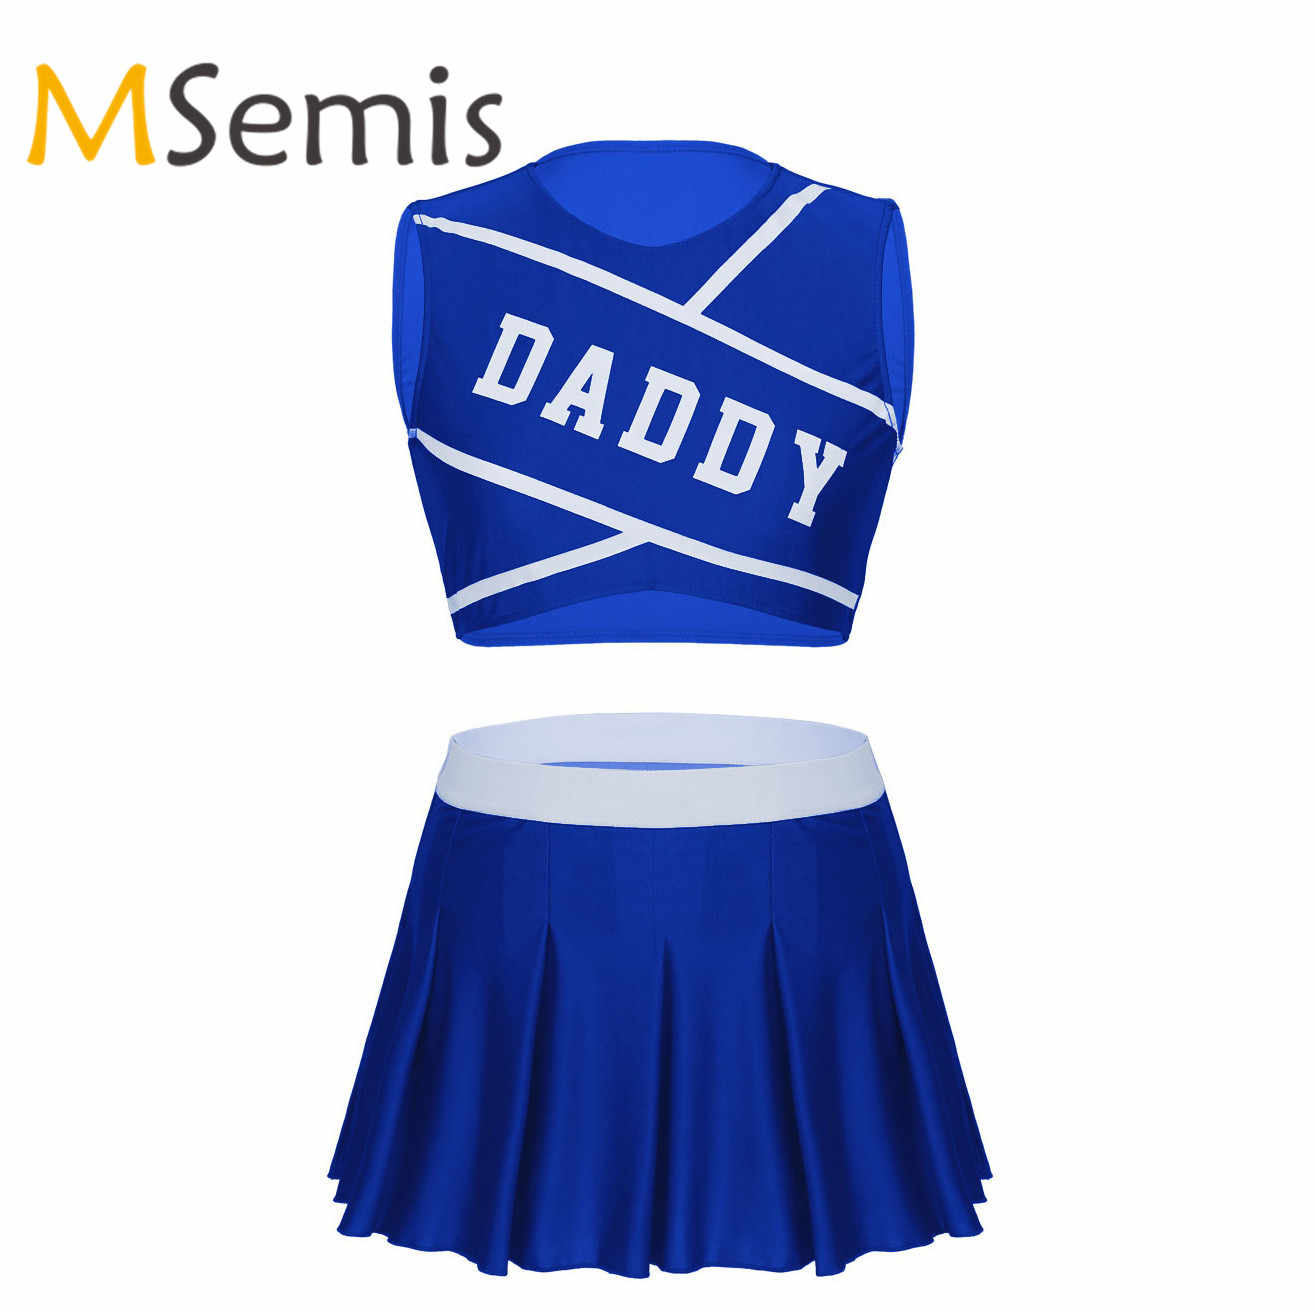 Frauen Cheerleader Uniform Schülerin Cheerleader Dancewear Crop Top mit Mini Plissee Rock Rolle Spielen Cheerleading Kostüm